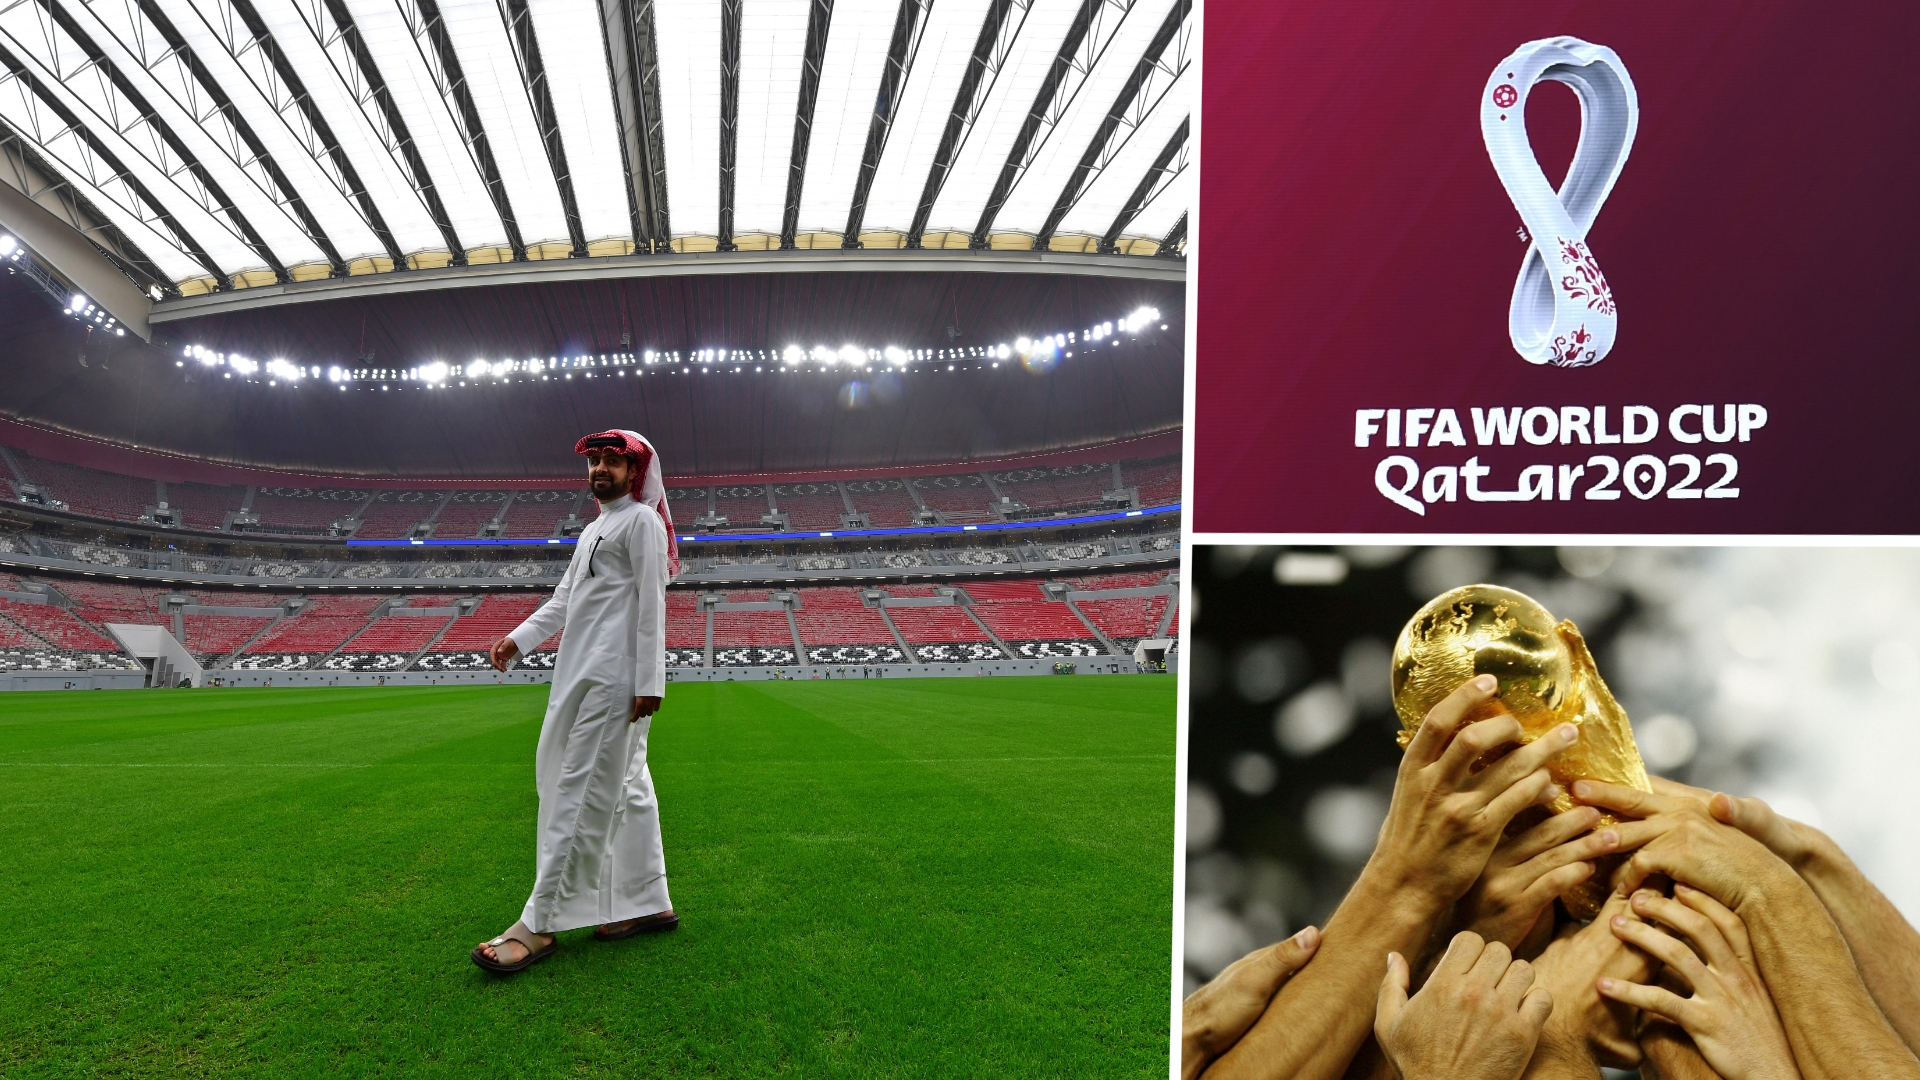 2022 World Cup Calendar.2022 World Cup Qatar Match Schedule And Timing A Big Win Win For Indian Fans Goal Com